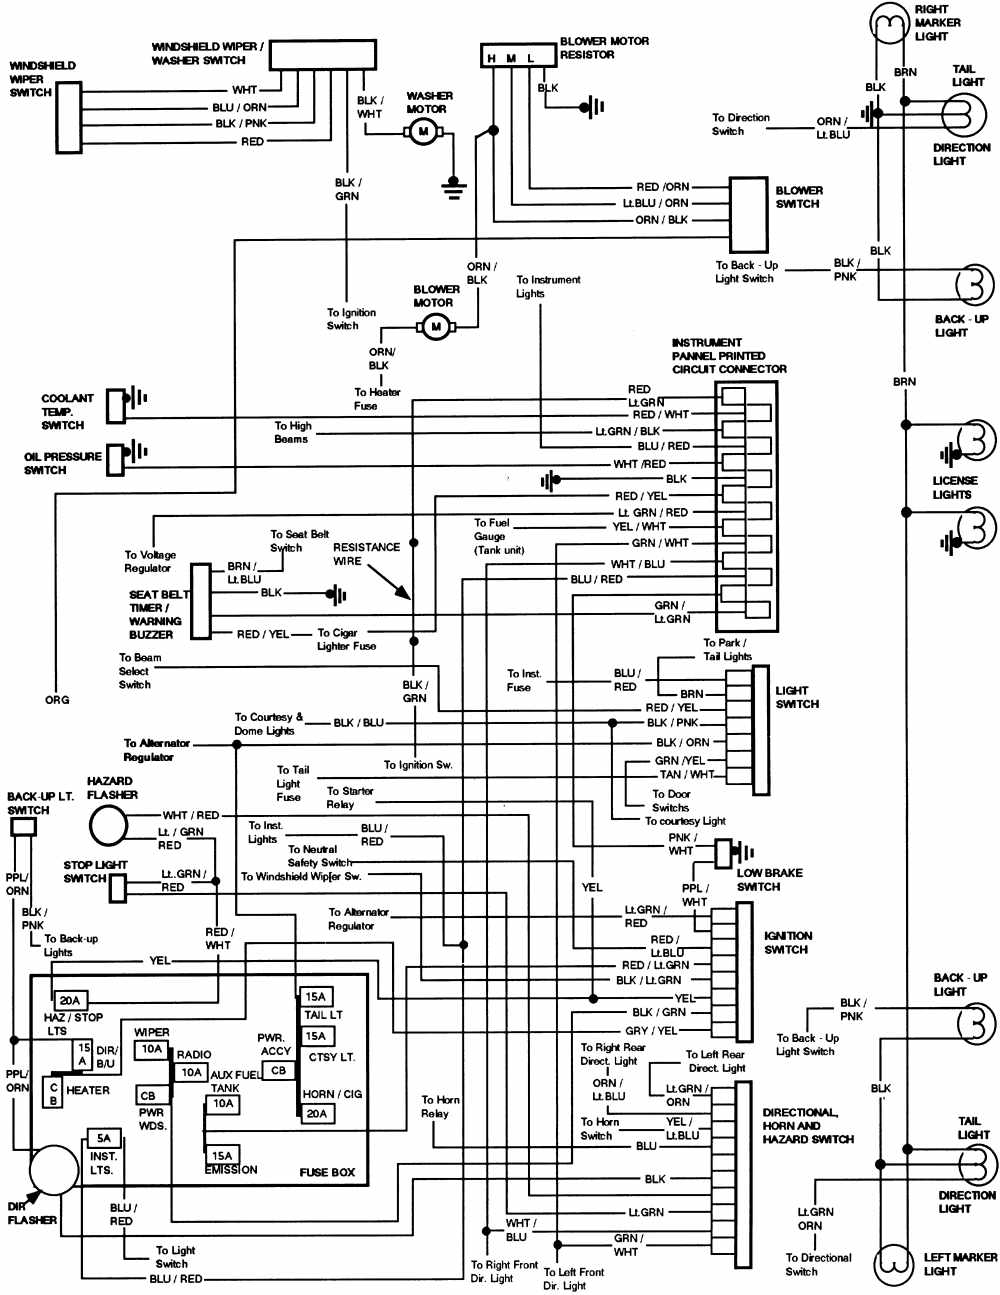 Ford Explorer Fuse Box Diagram Together With Ford F 250 Wiring Diagram